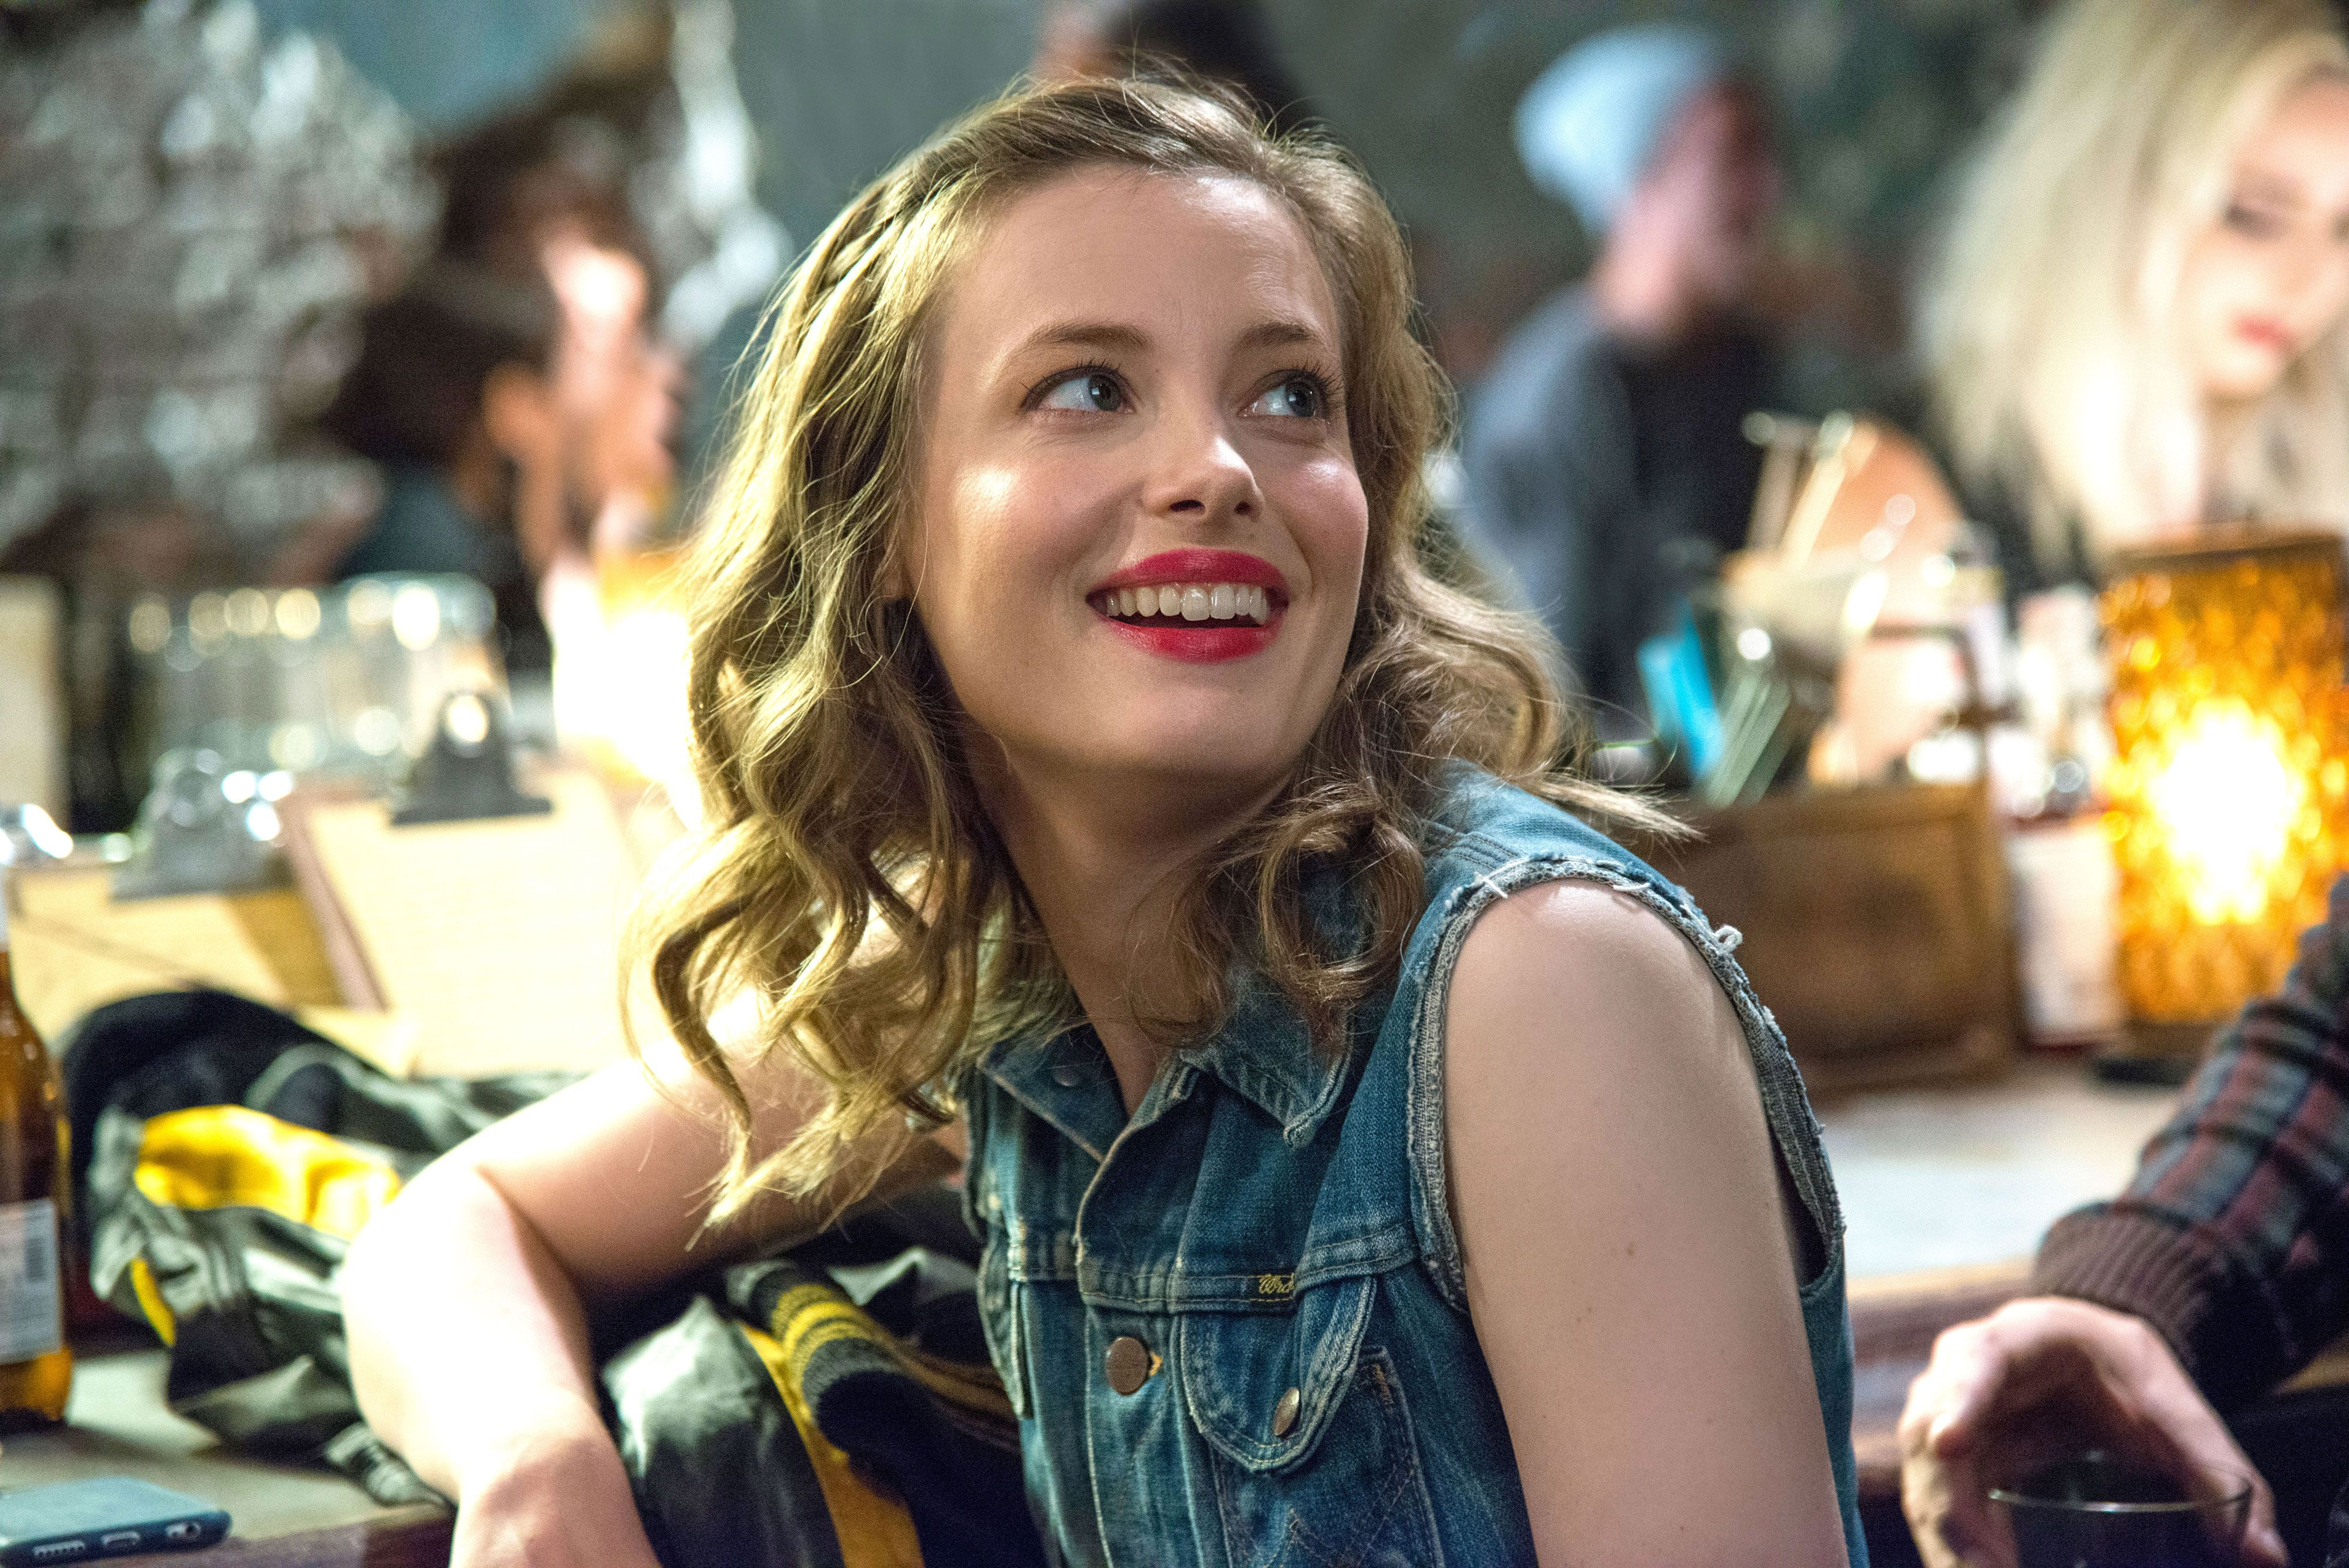 Gillian Jacobs on Playing a Female Anti-Hero and BattlingSelf-Doubt recommend